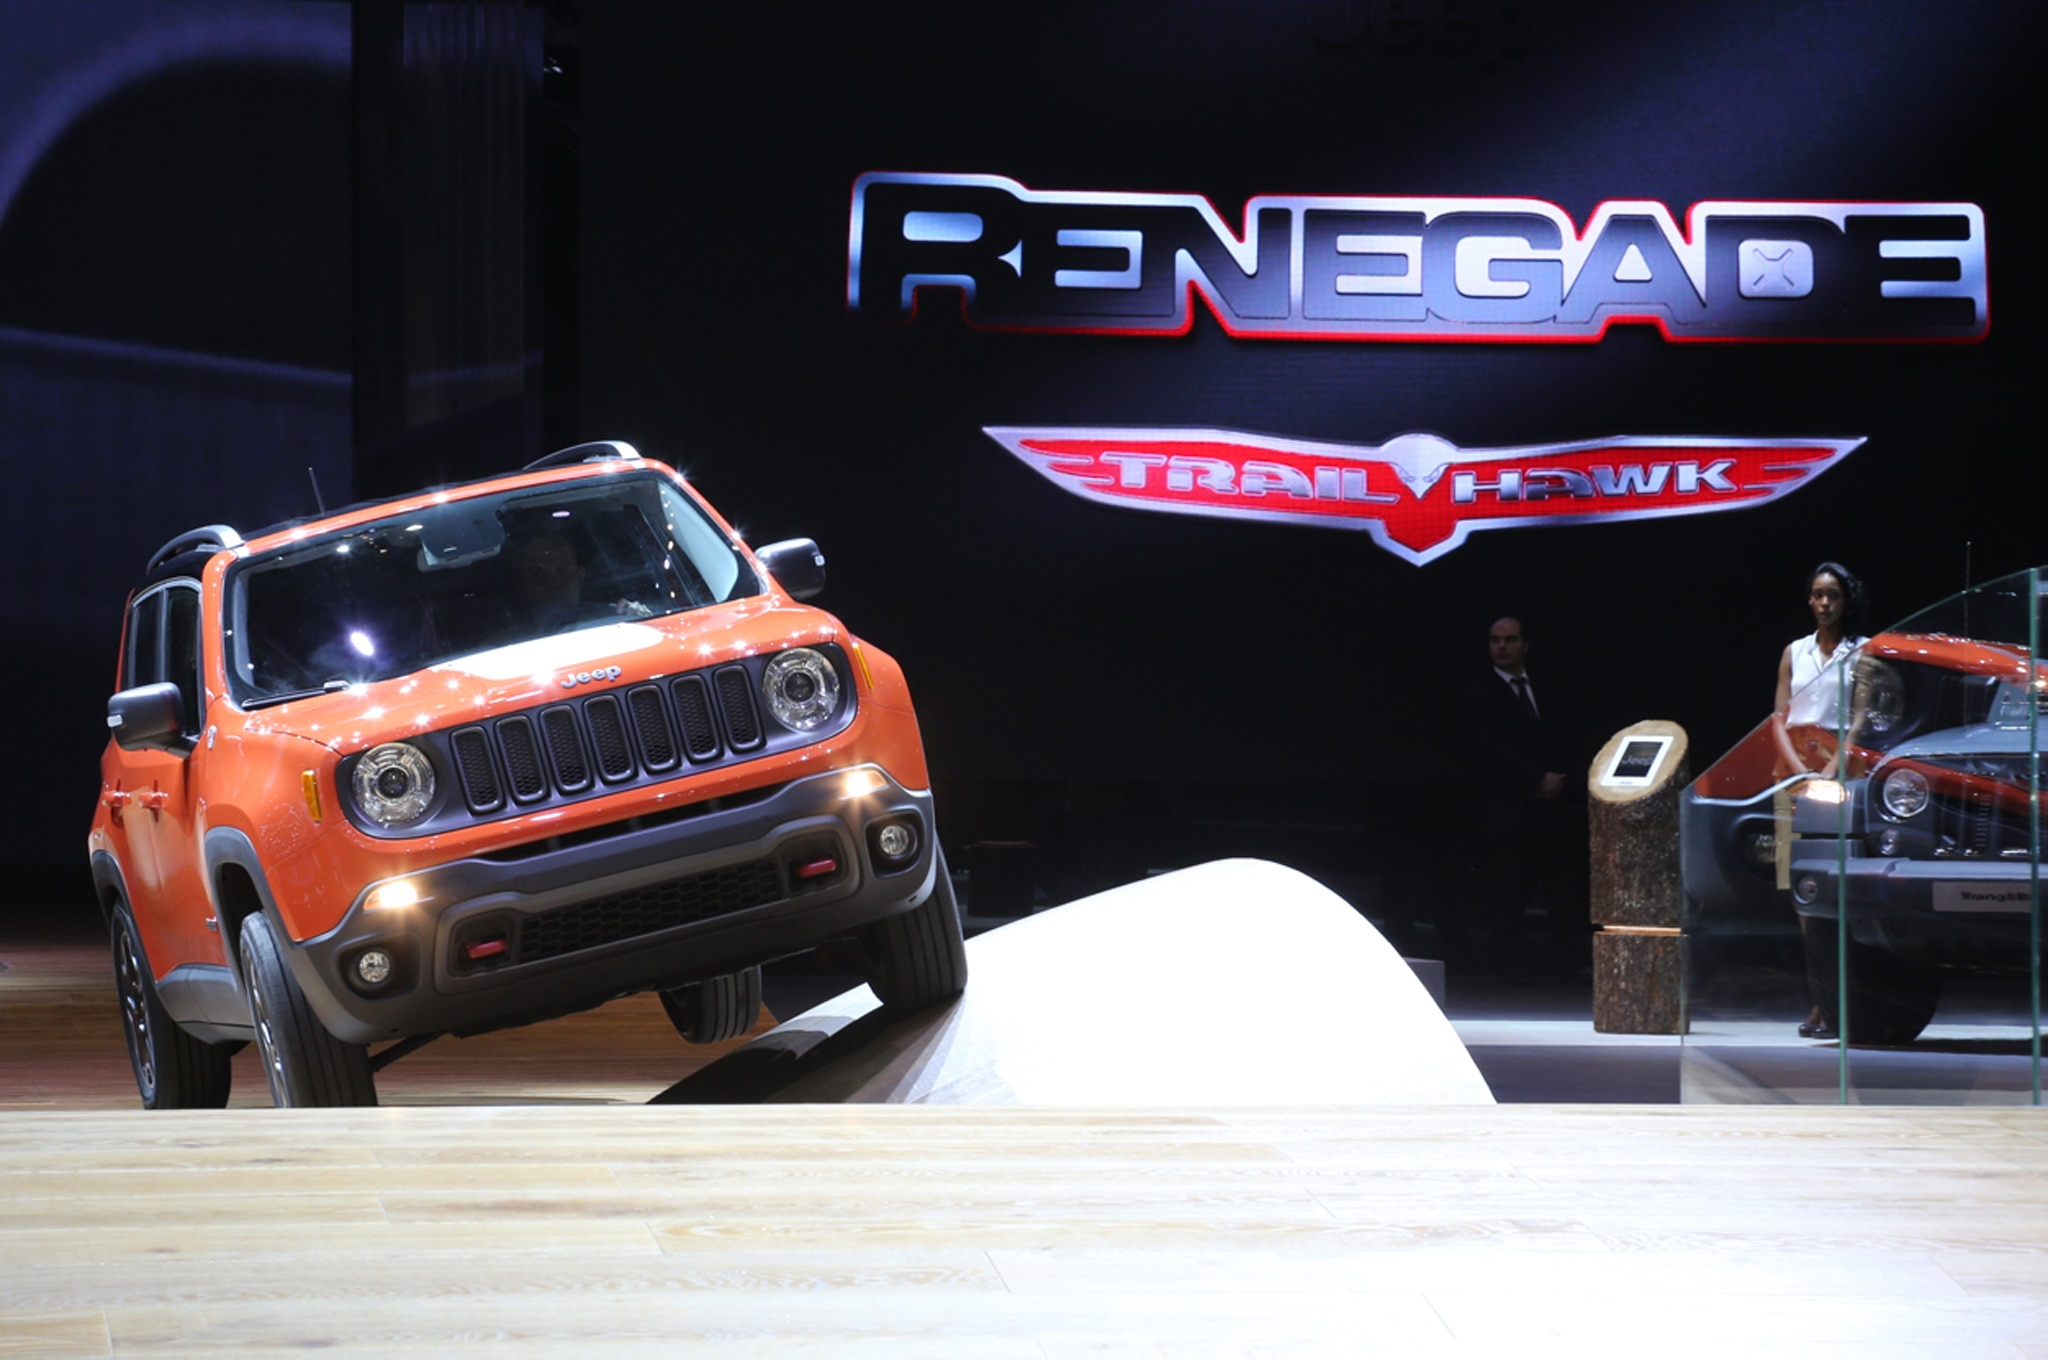 2015 Jeep Renegade Trailhawk show floor with sign